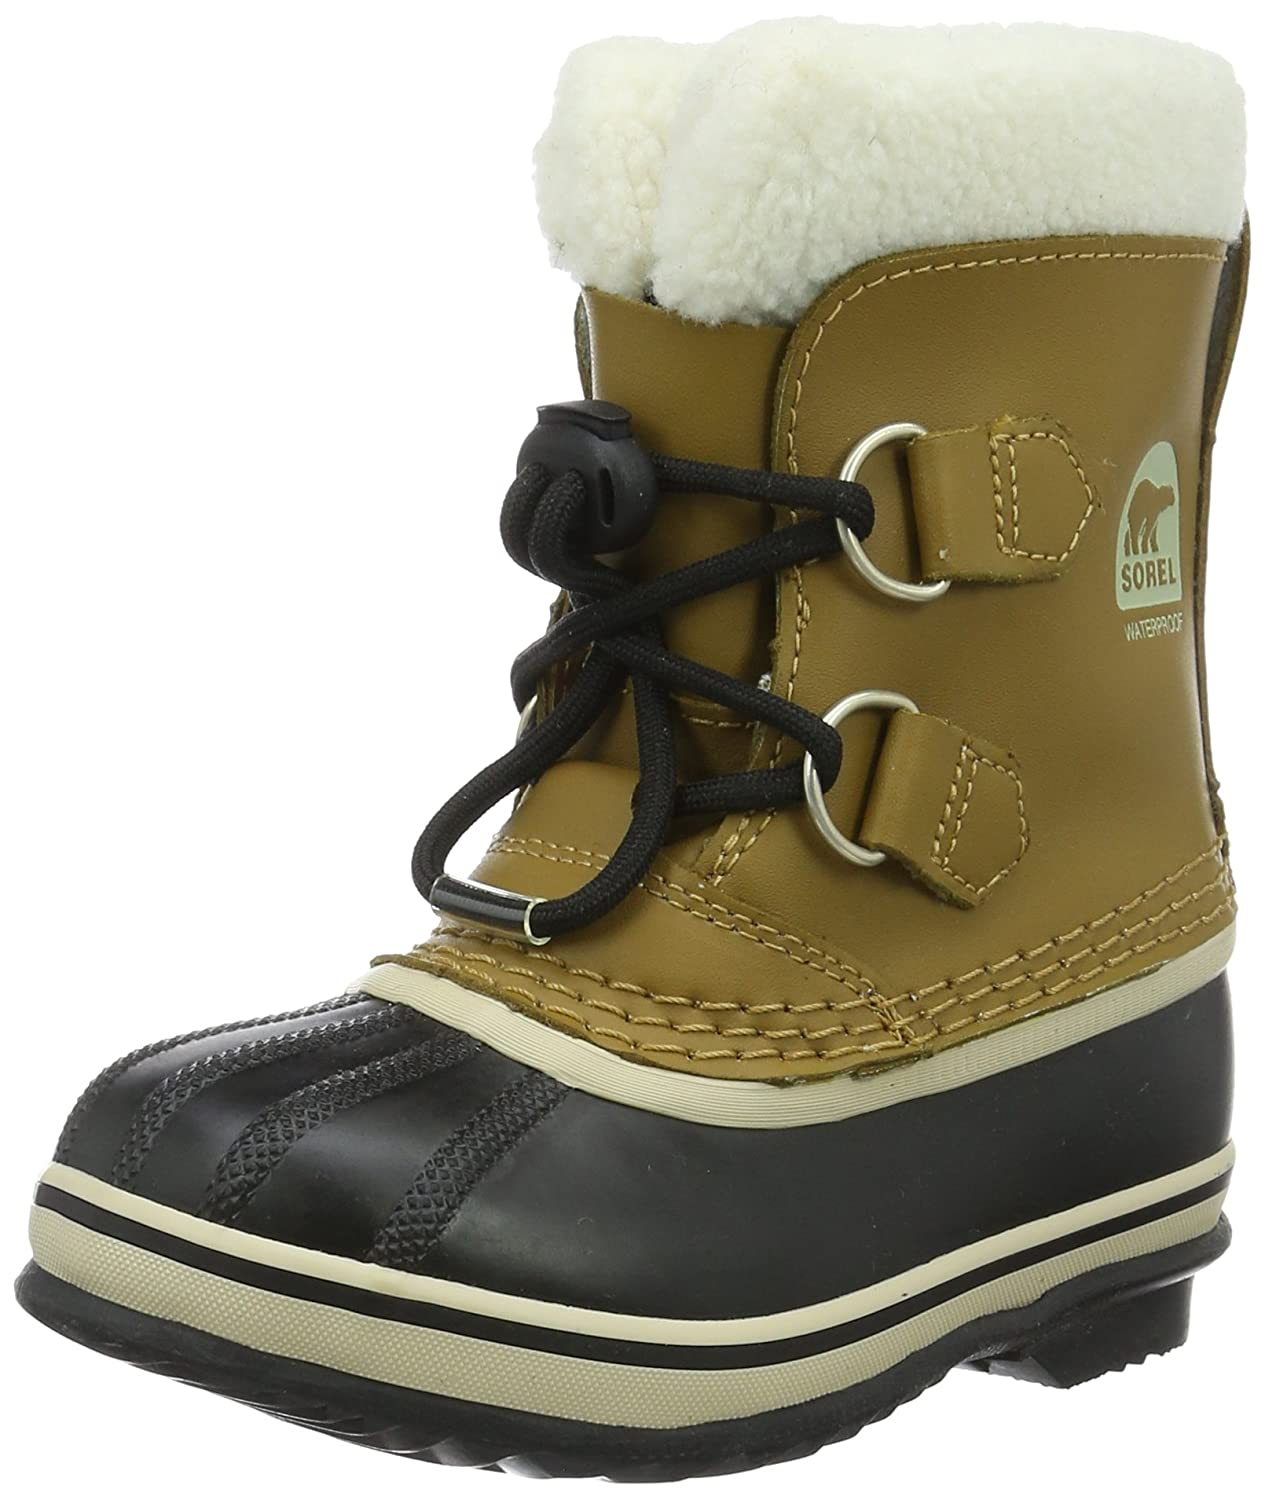 Sorel Yoot Pac TP MS Cold Weather Boot (Toddler/Little Kid/Big Kid) YOOT PAC TP-Mesquite - K